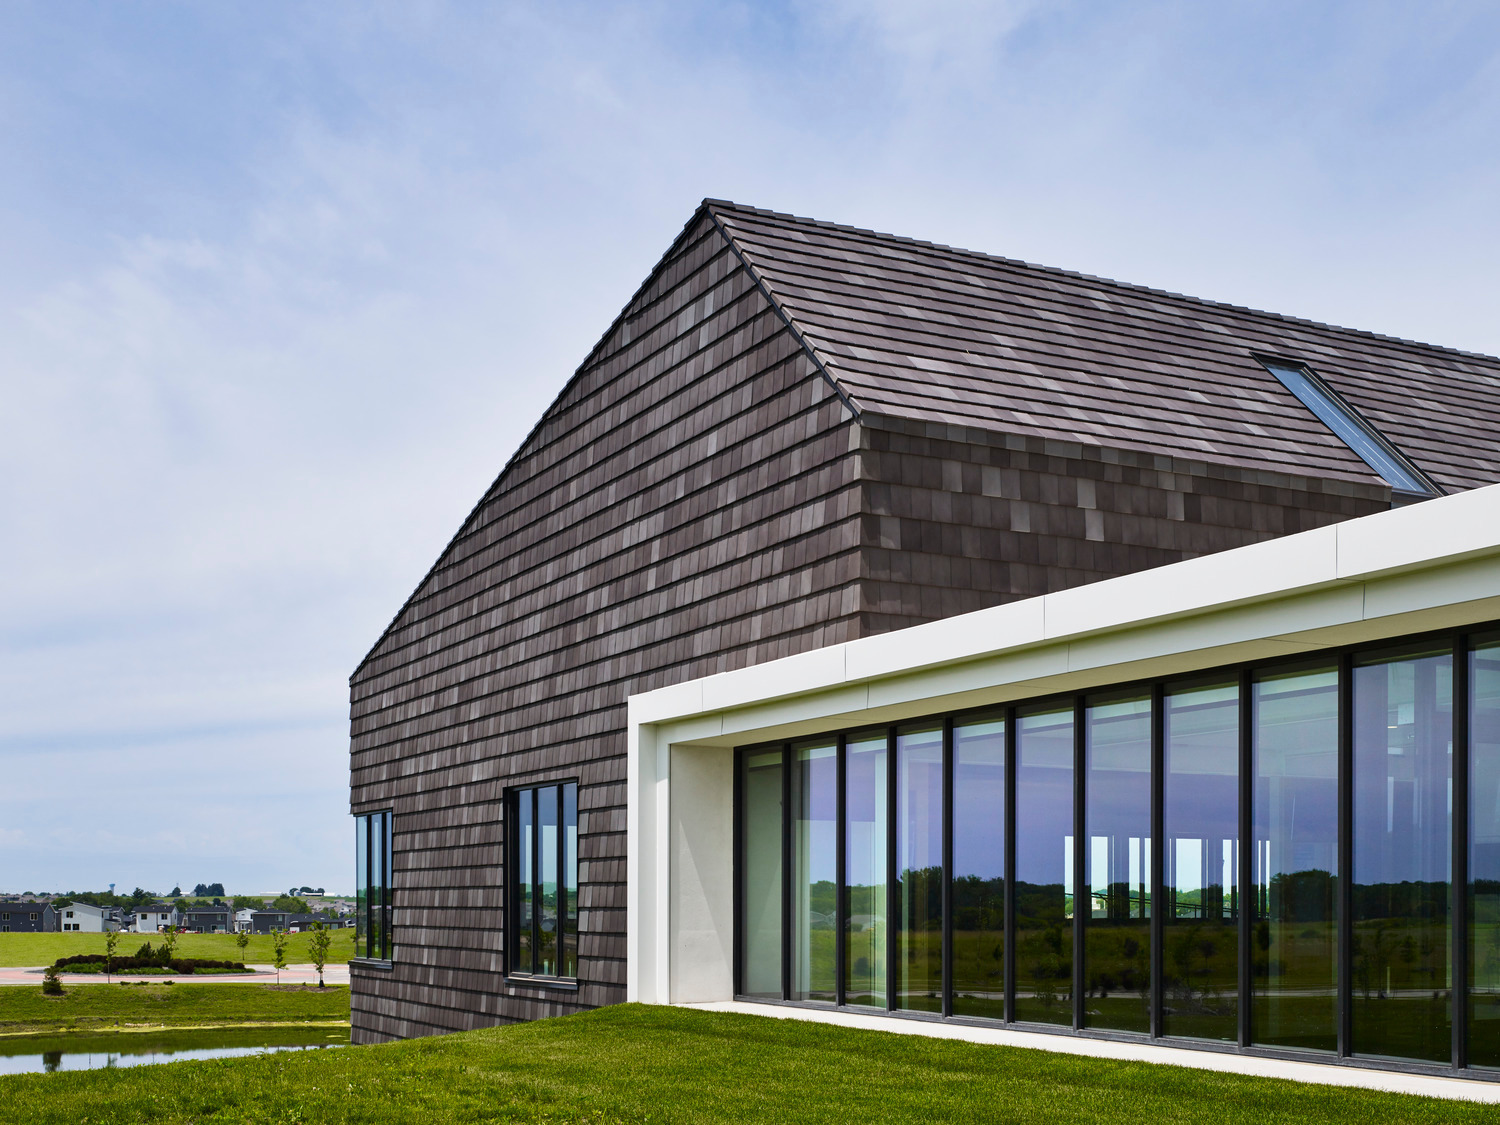 Terreal North America Lutheran Church of Hope Exterior Cladding and Floor to Ceiling Window Design